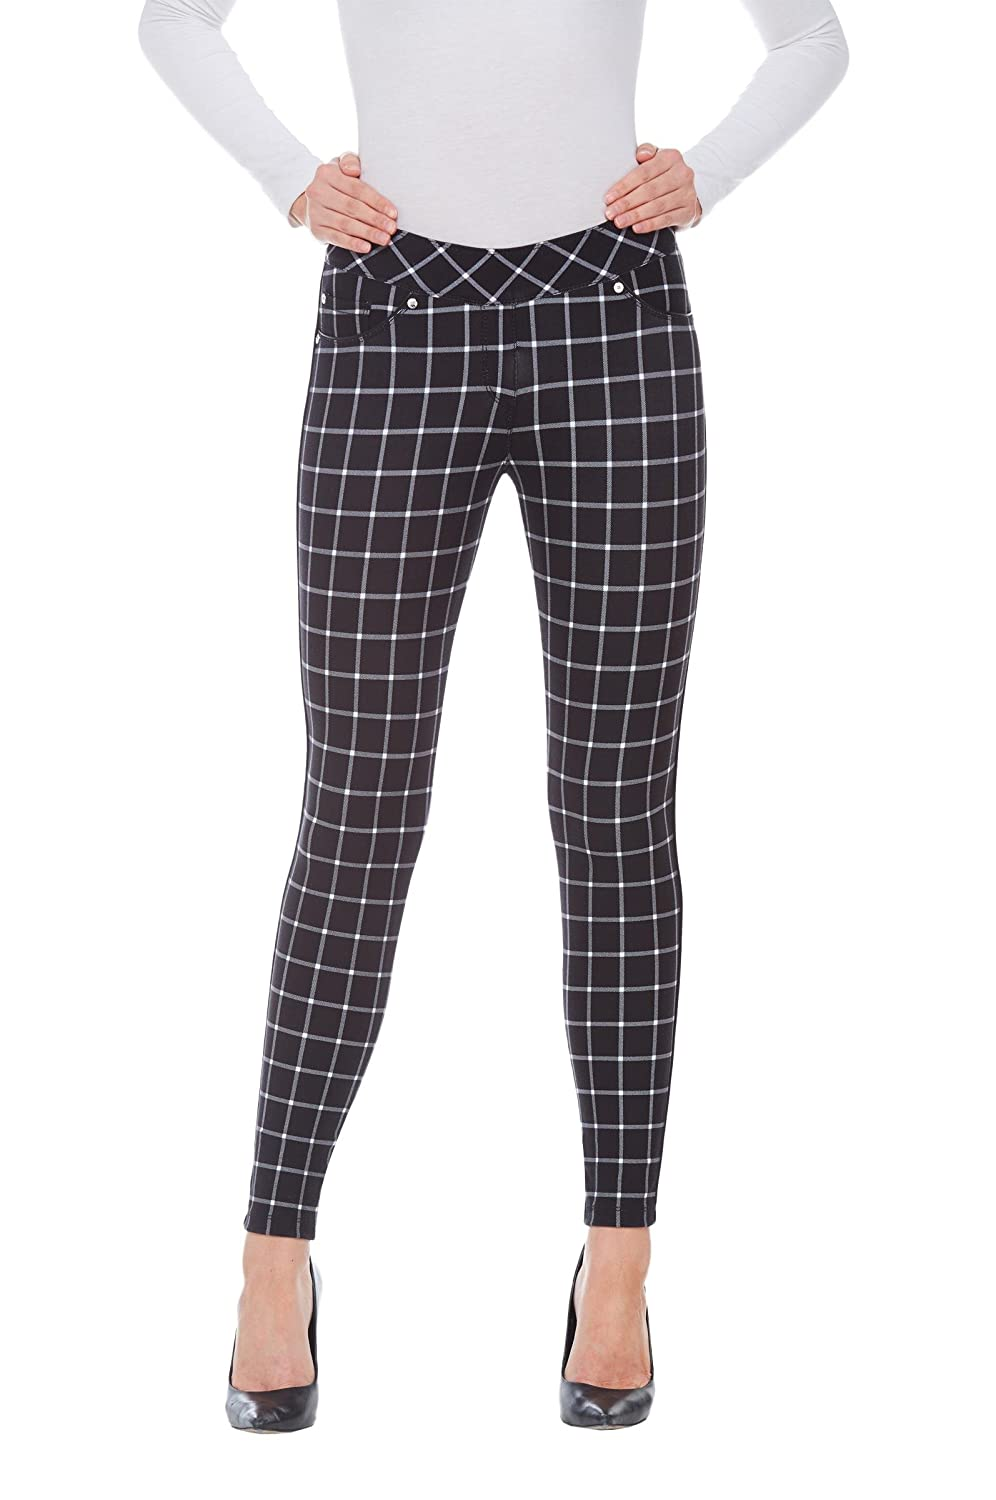 Plus Luxe C4J Plaid Piped Jeggings BlkWhtCheck 1X Nygard